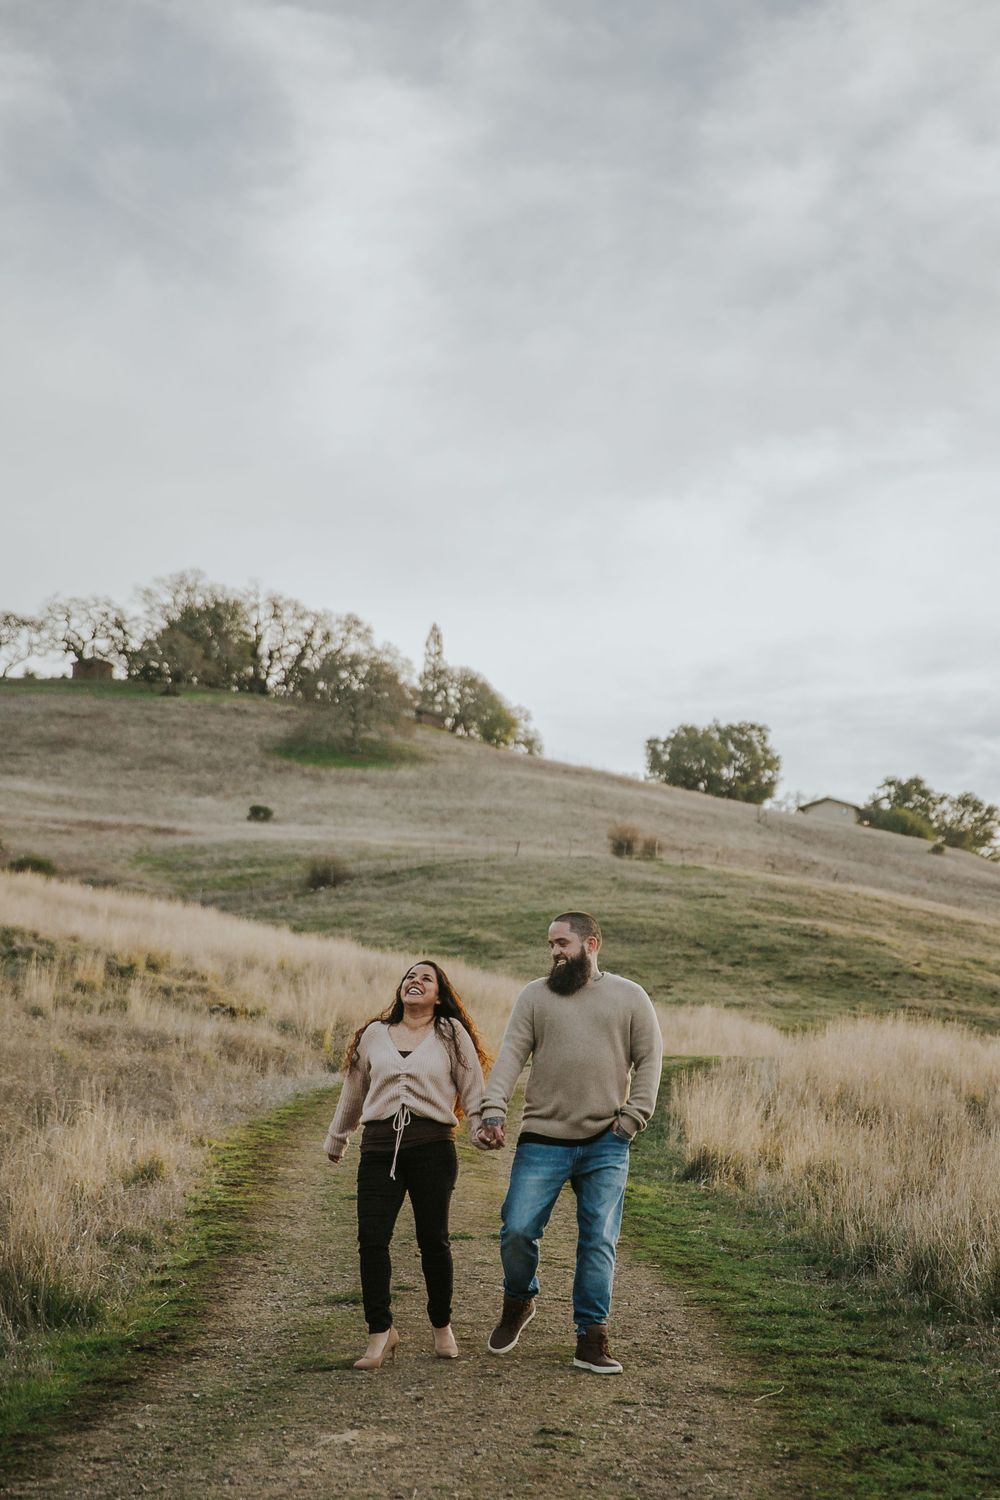 rebecca skidgel photographer engagement session at north sonoma mountain couple in field holding hands laughing walking